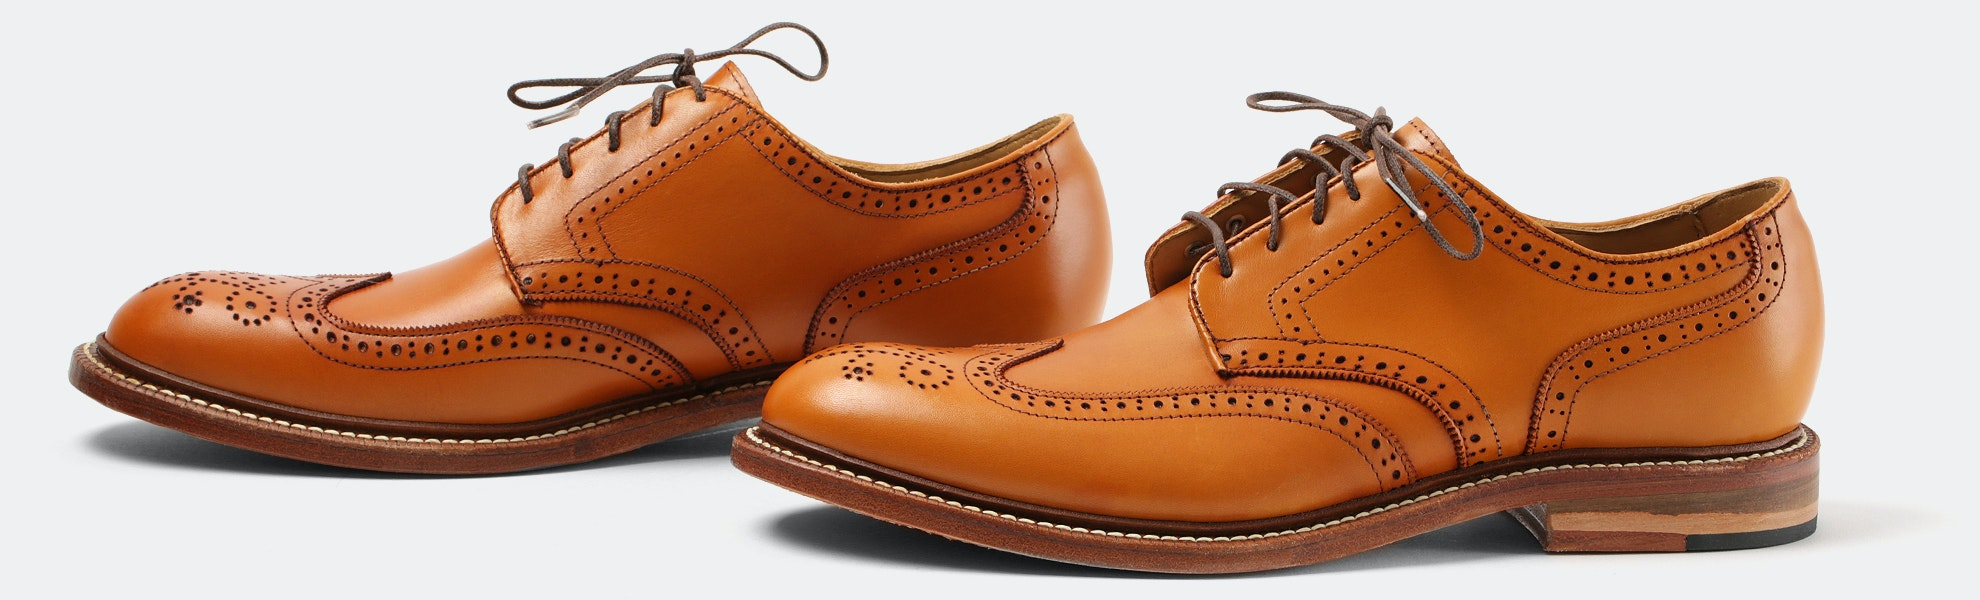 Oak Street Bootmakers Wingtip – Massdrop Exclusive